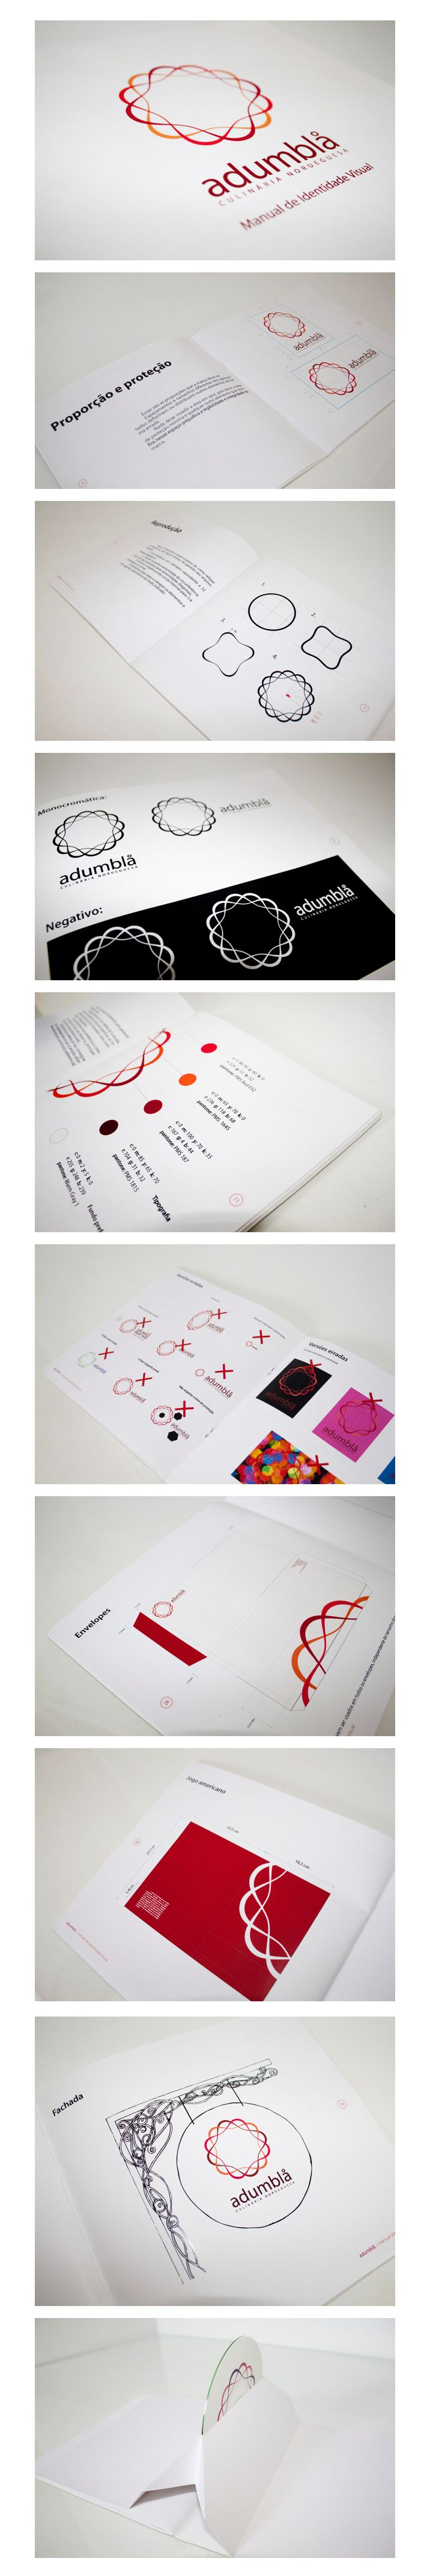 A good example of a colour logo with a monochromatic interpretation carefully defined in the style manual.